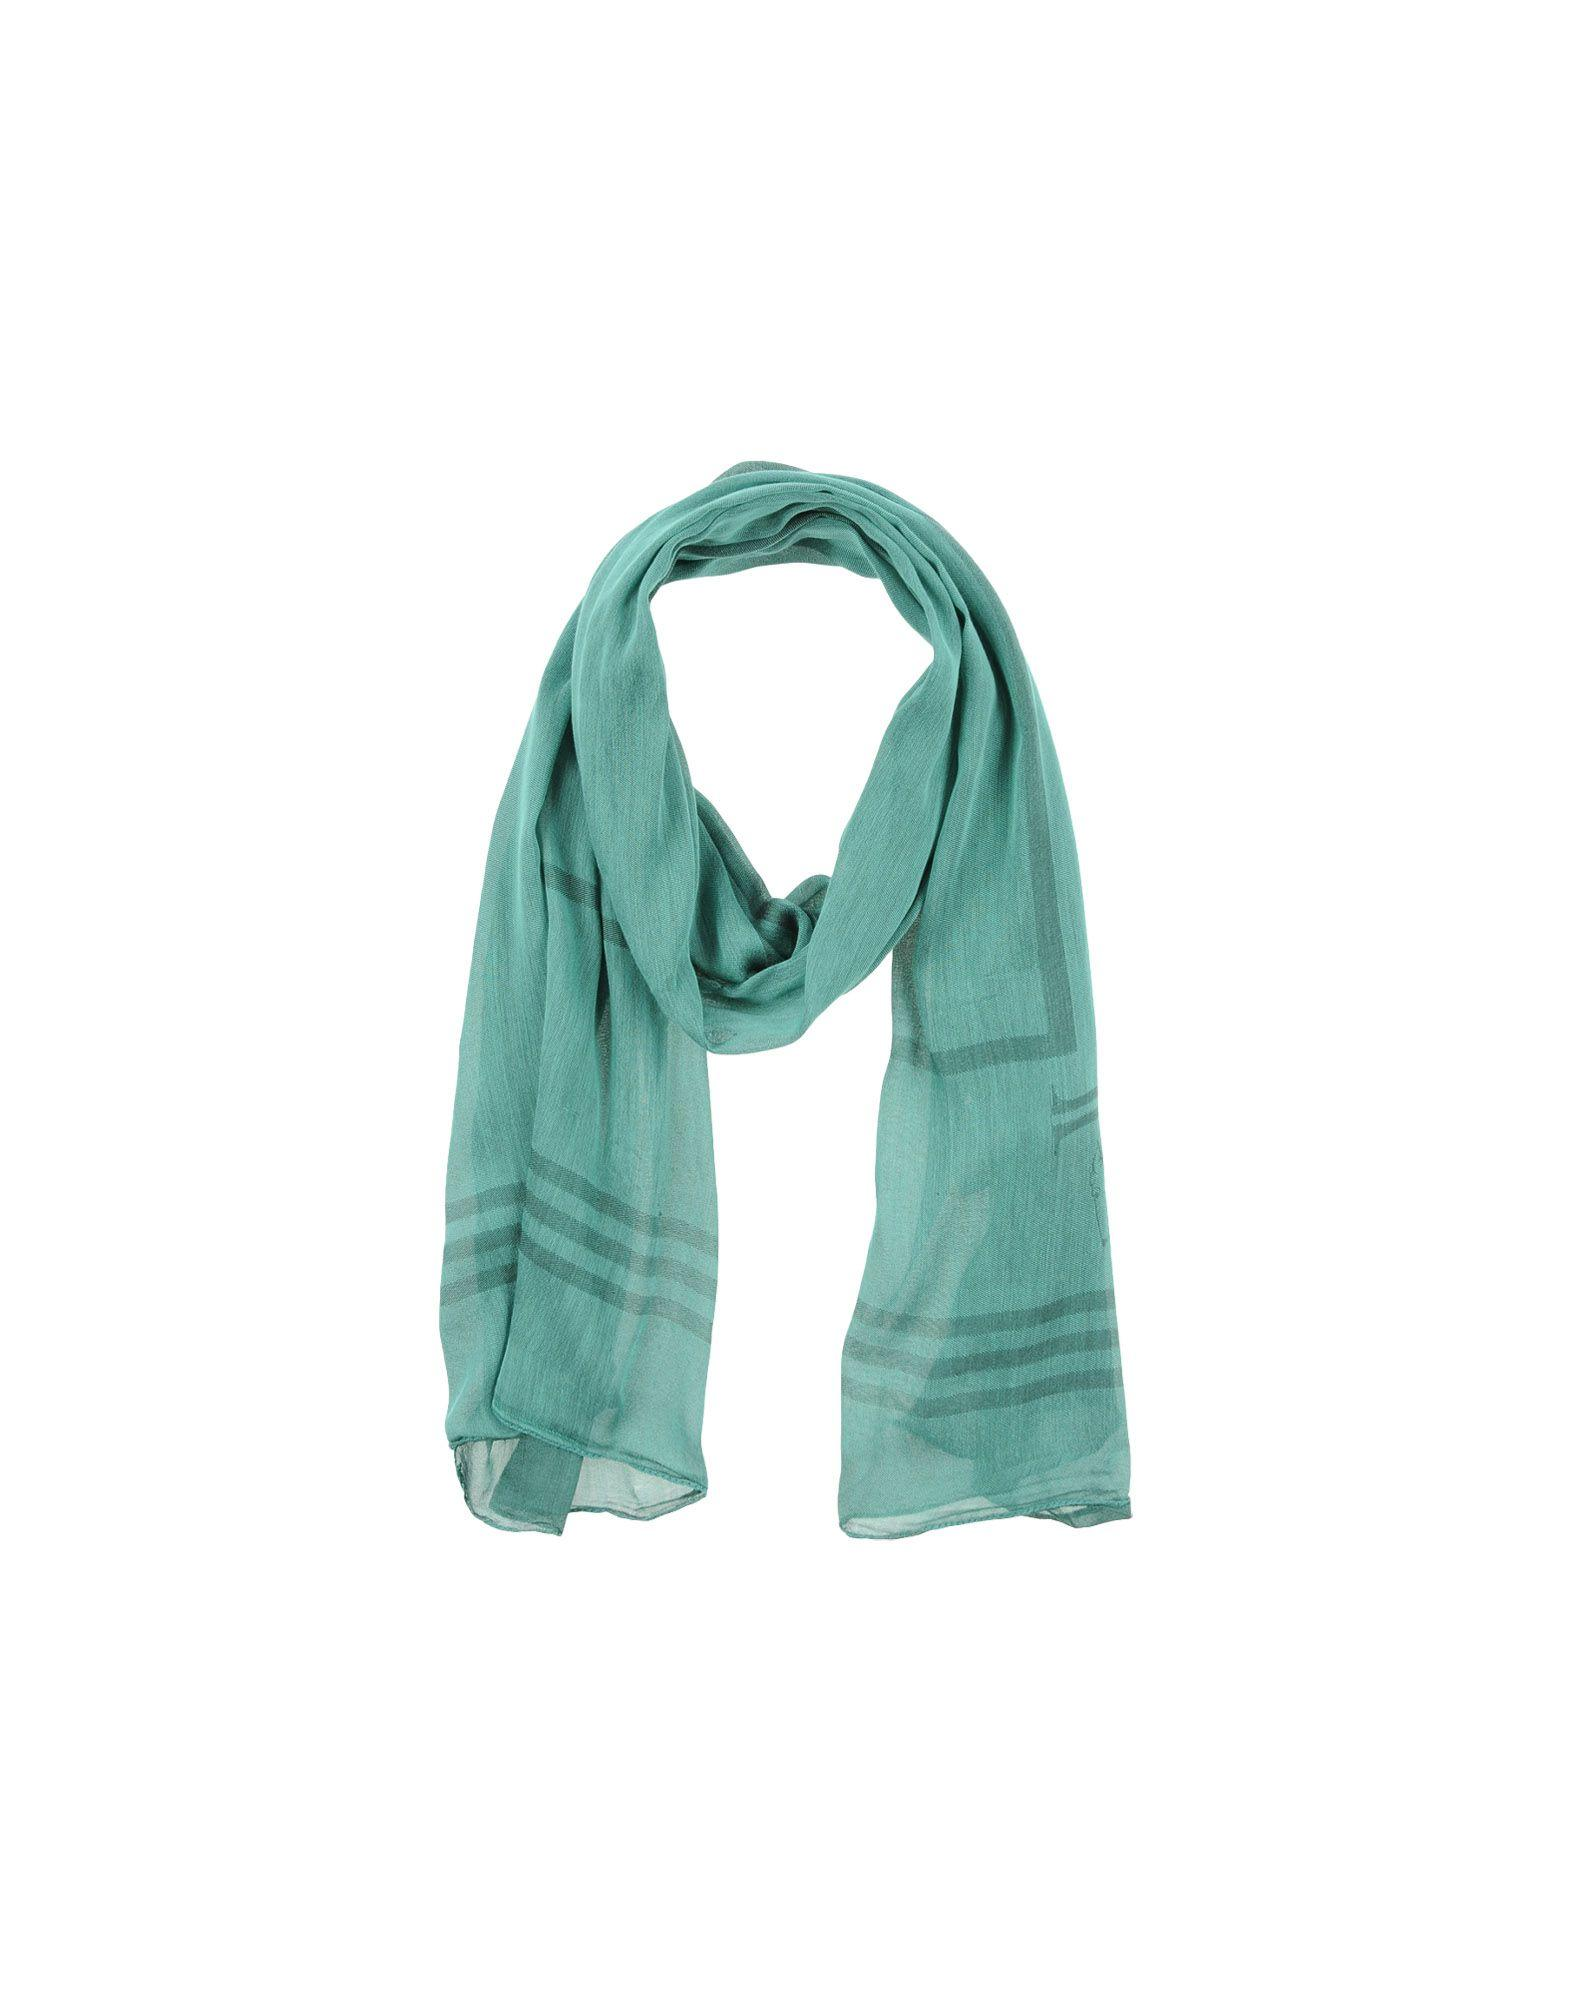 Trussardi Jeans Scarves In Turquoise